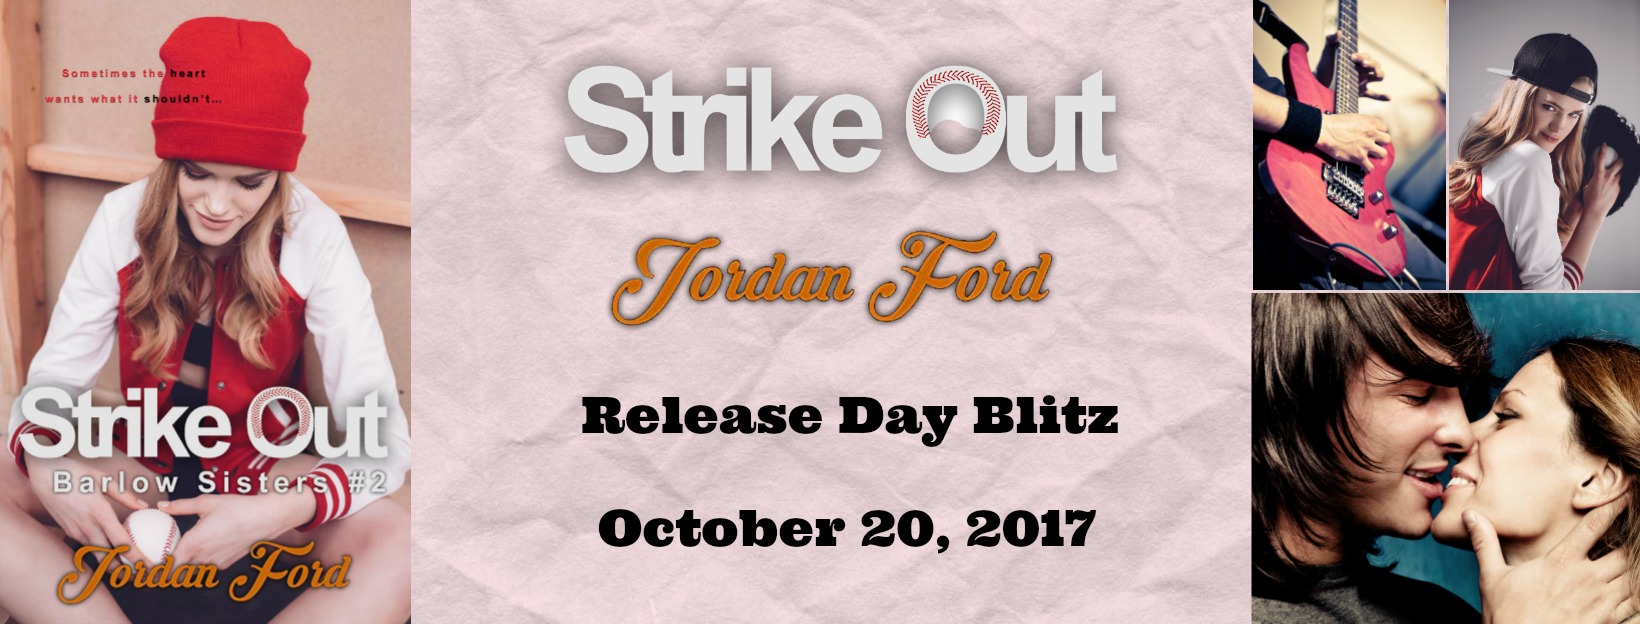 Strike Out Release Day Blitz